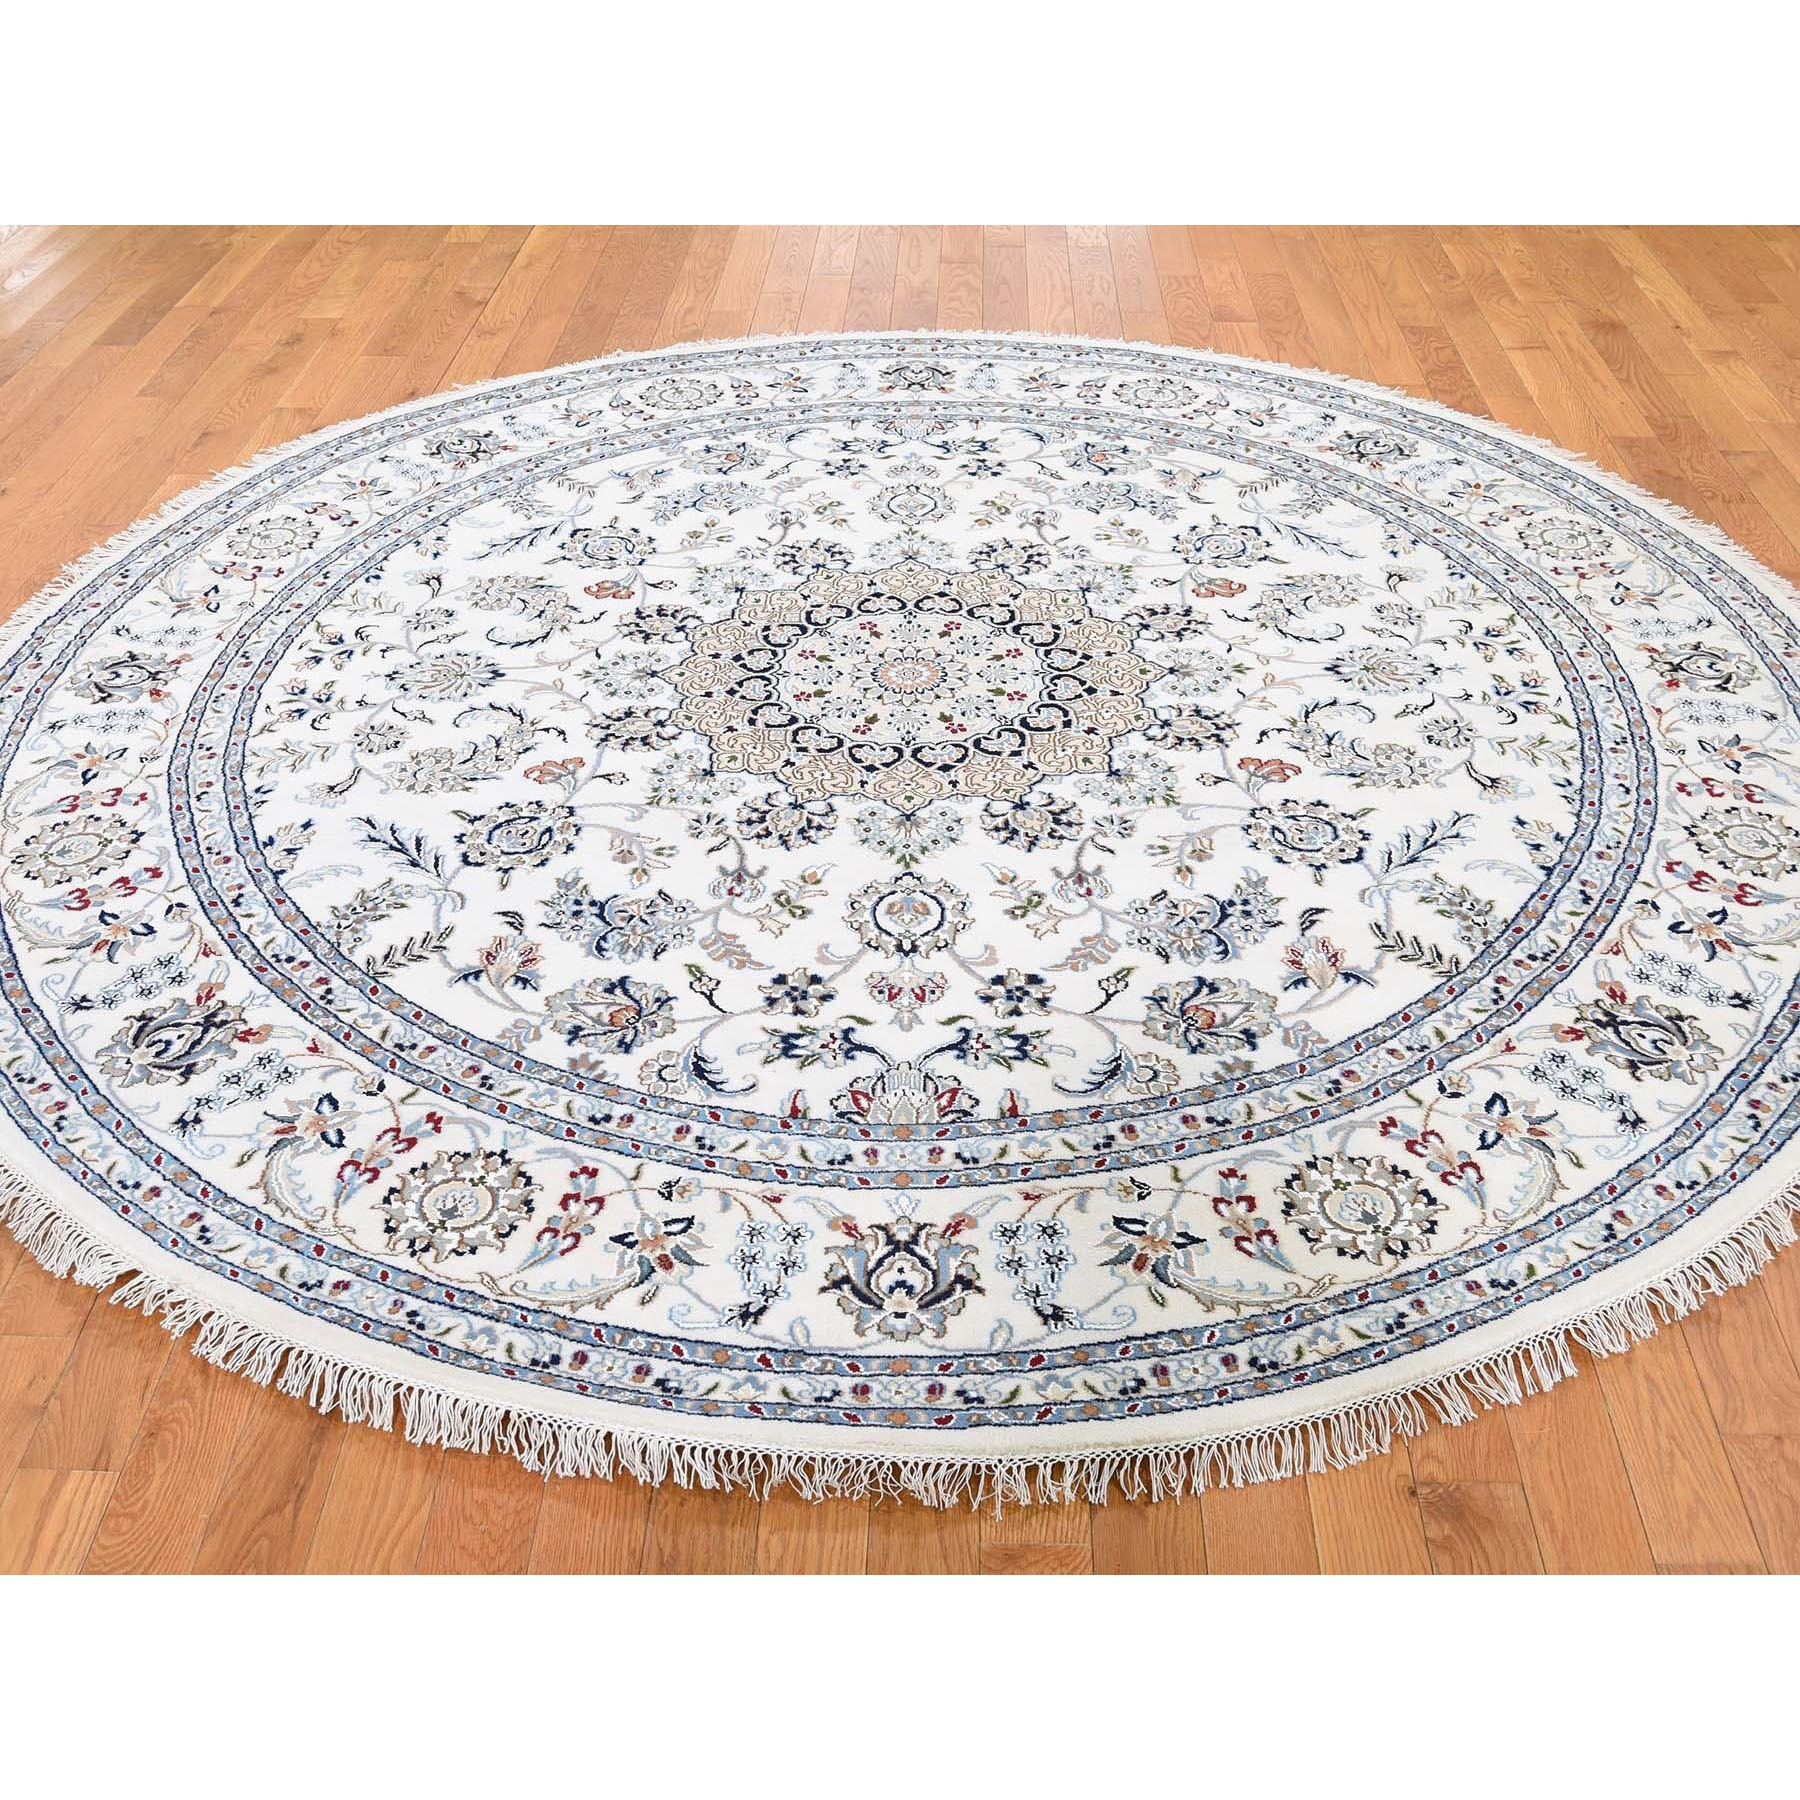 """6'10""""x6'10"""" Round Wool And Silk 250 KPSI Ivory Nain Hand Knotted Oriental Rug"""